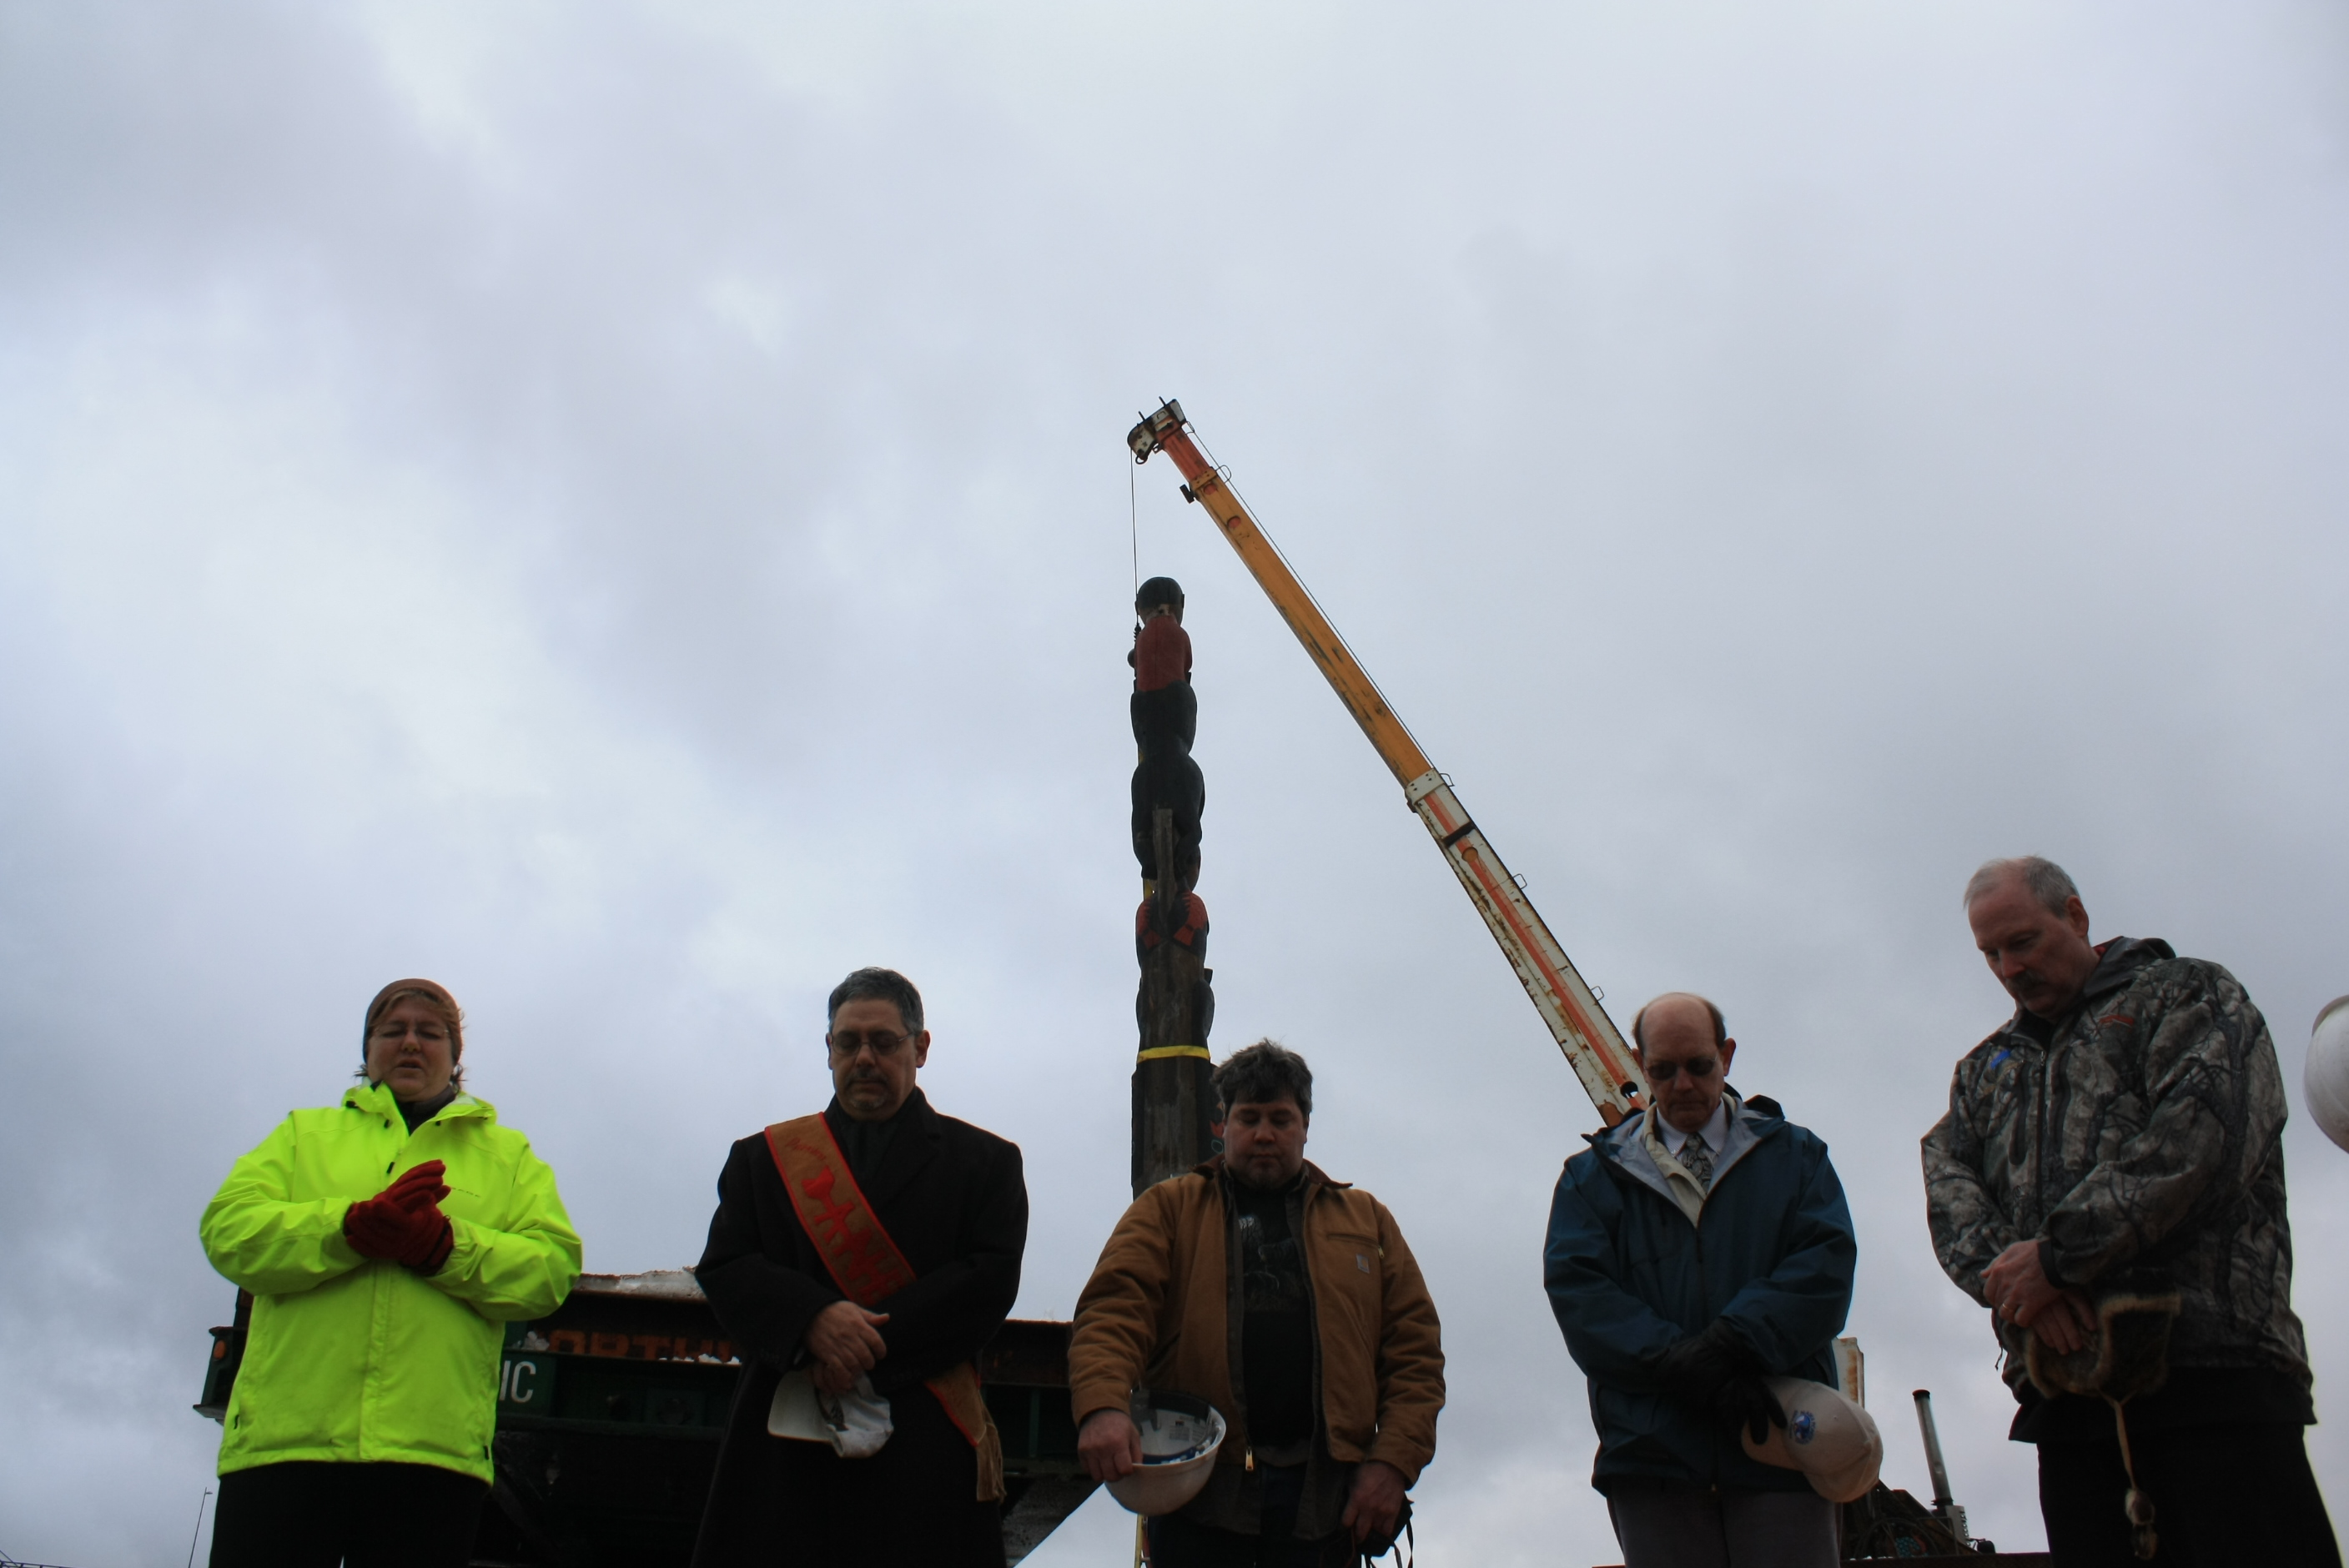 Controversial totem pole returns to Sitka square